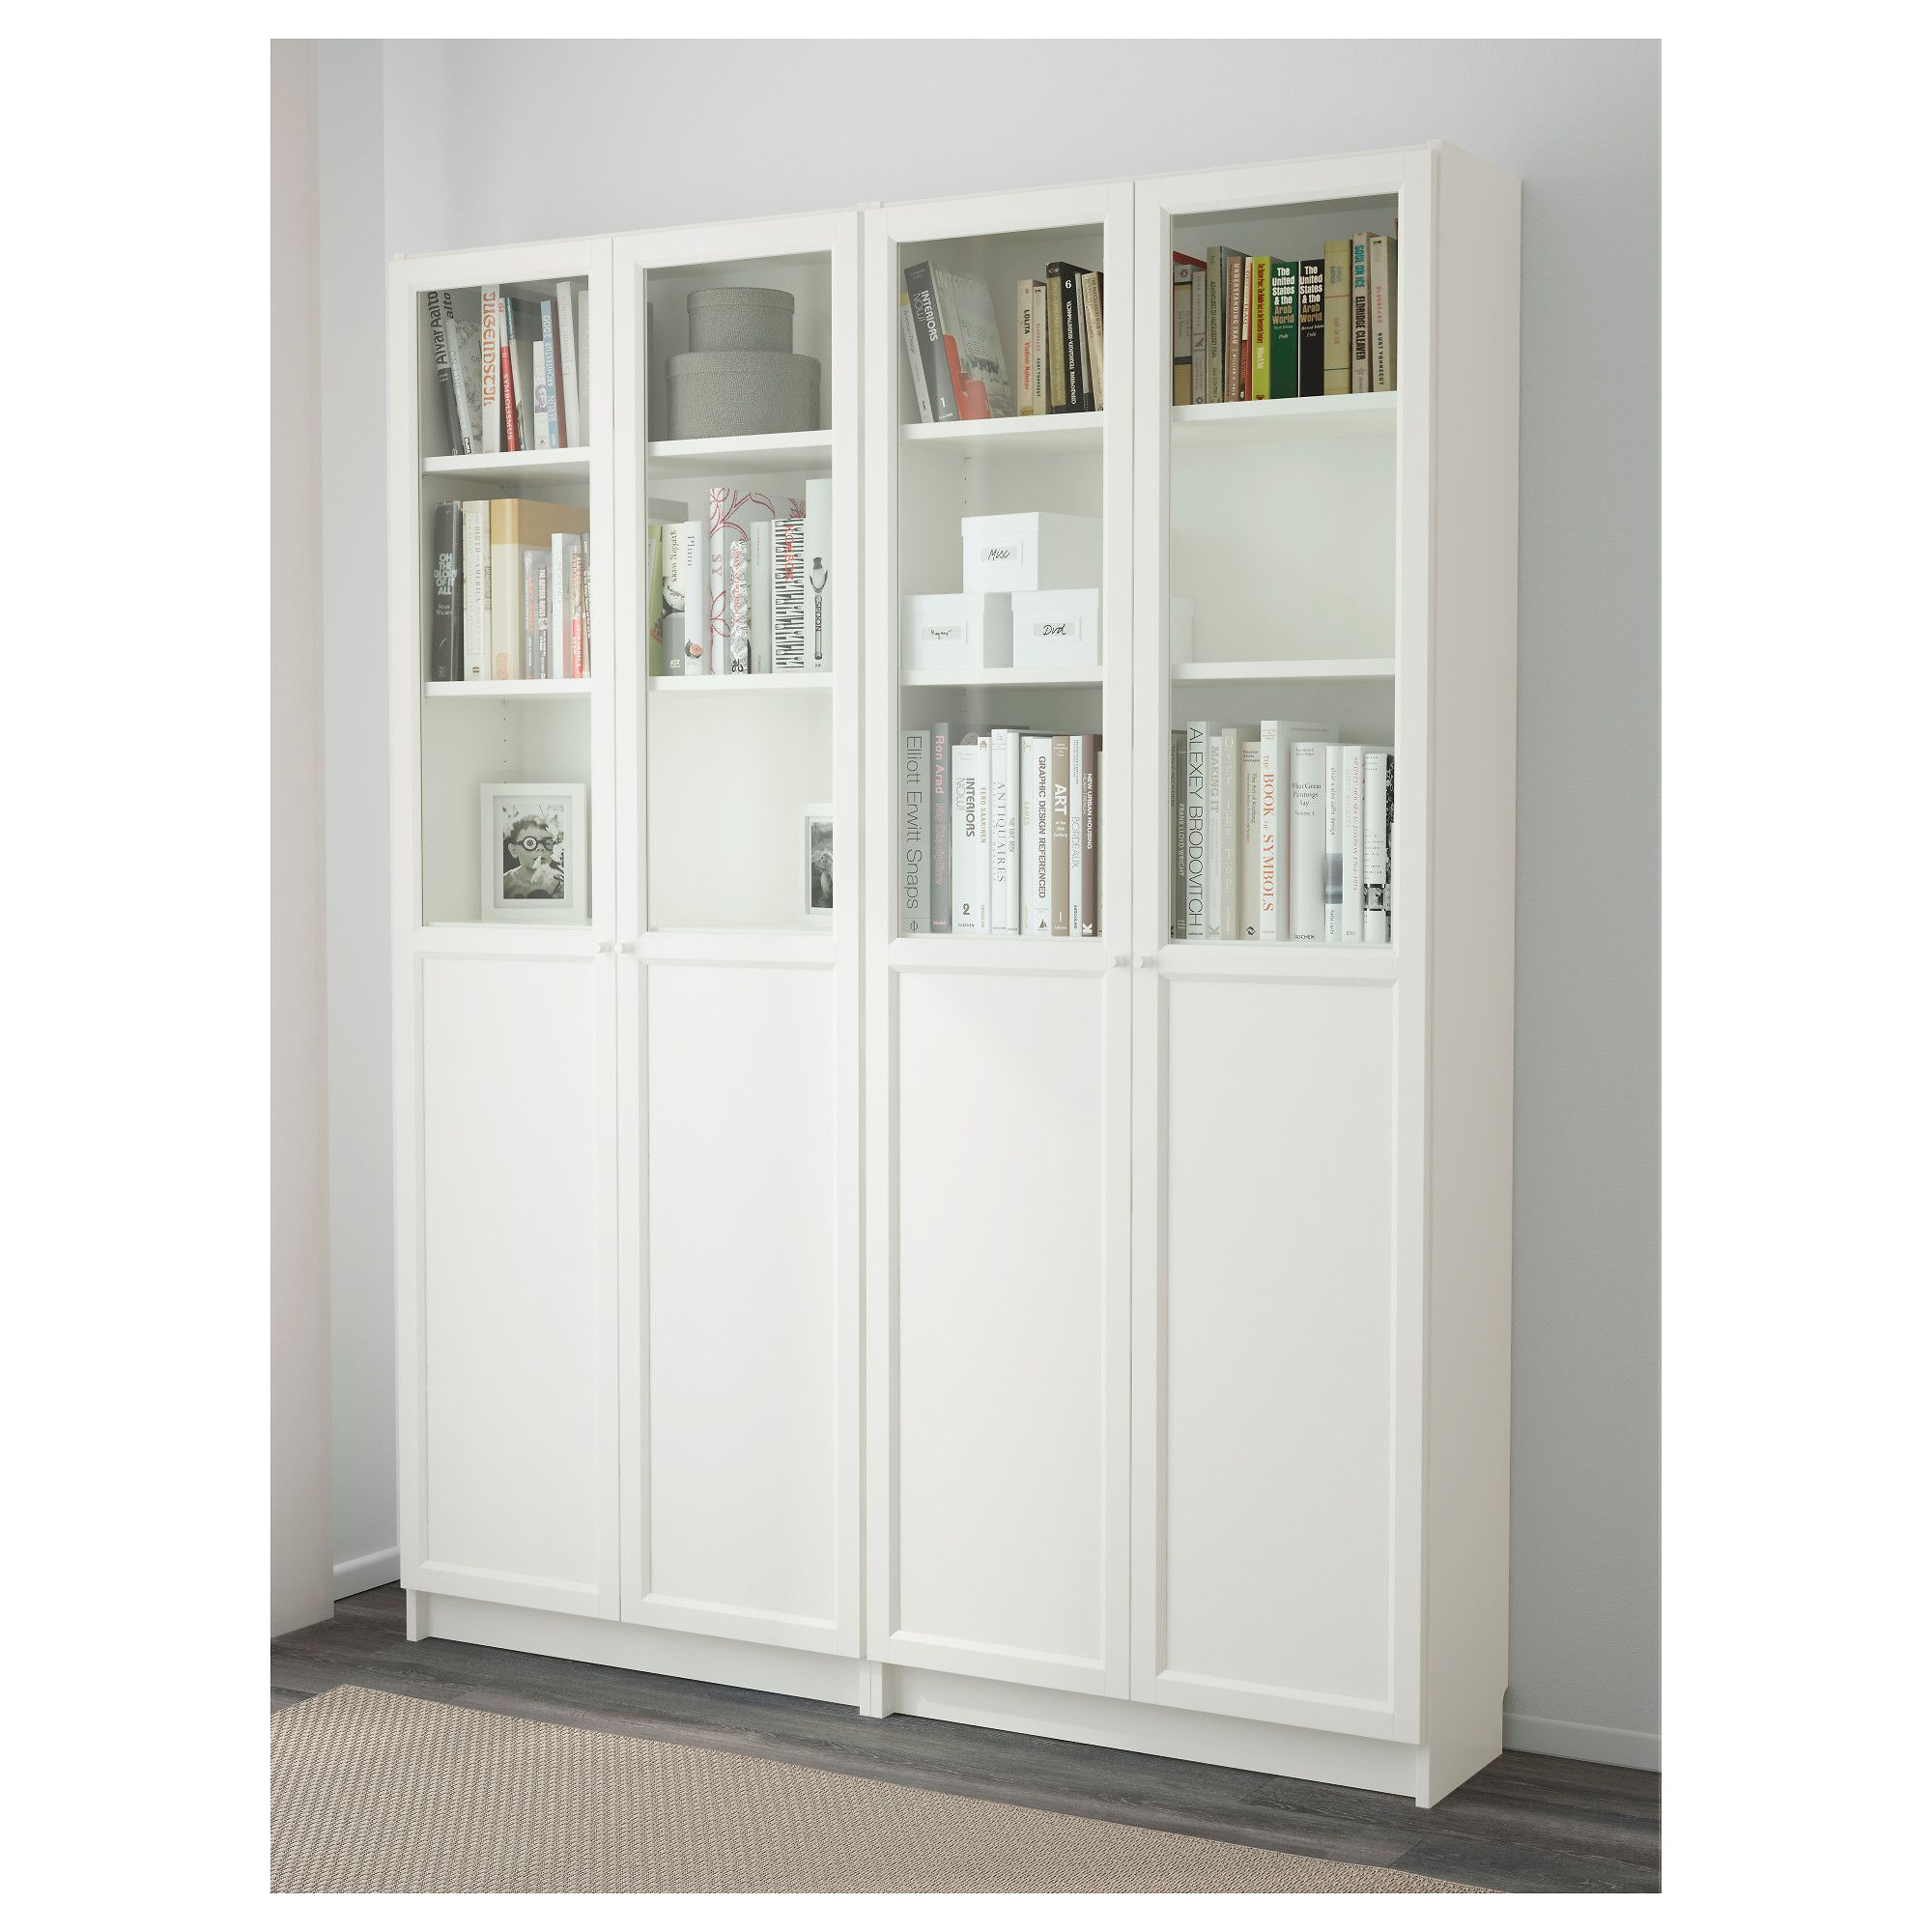 Ikea Billy Oxberg Bookcase White Adjule Shelves Can Be Arranged According To Your Needs Hinges Allow